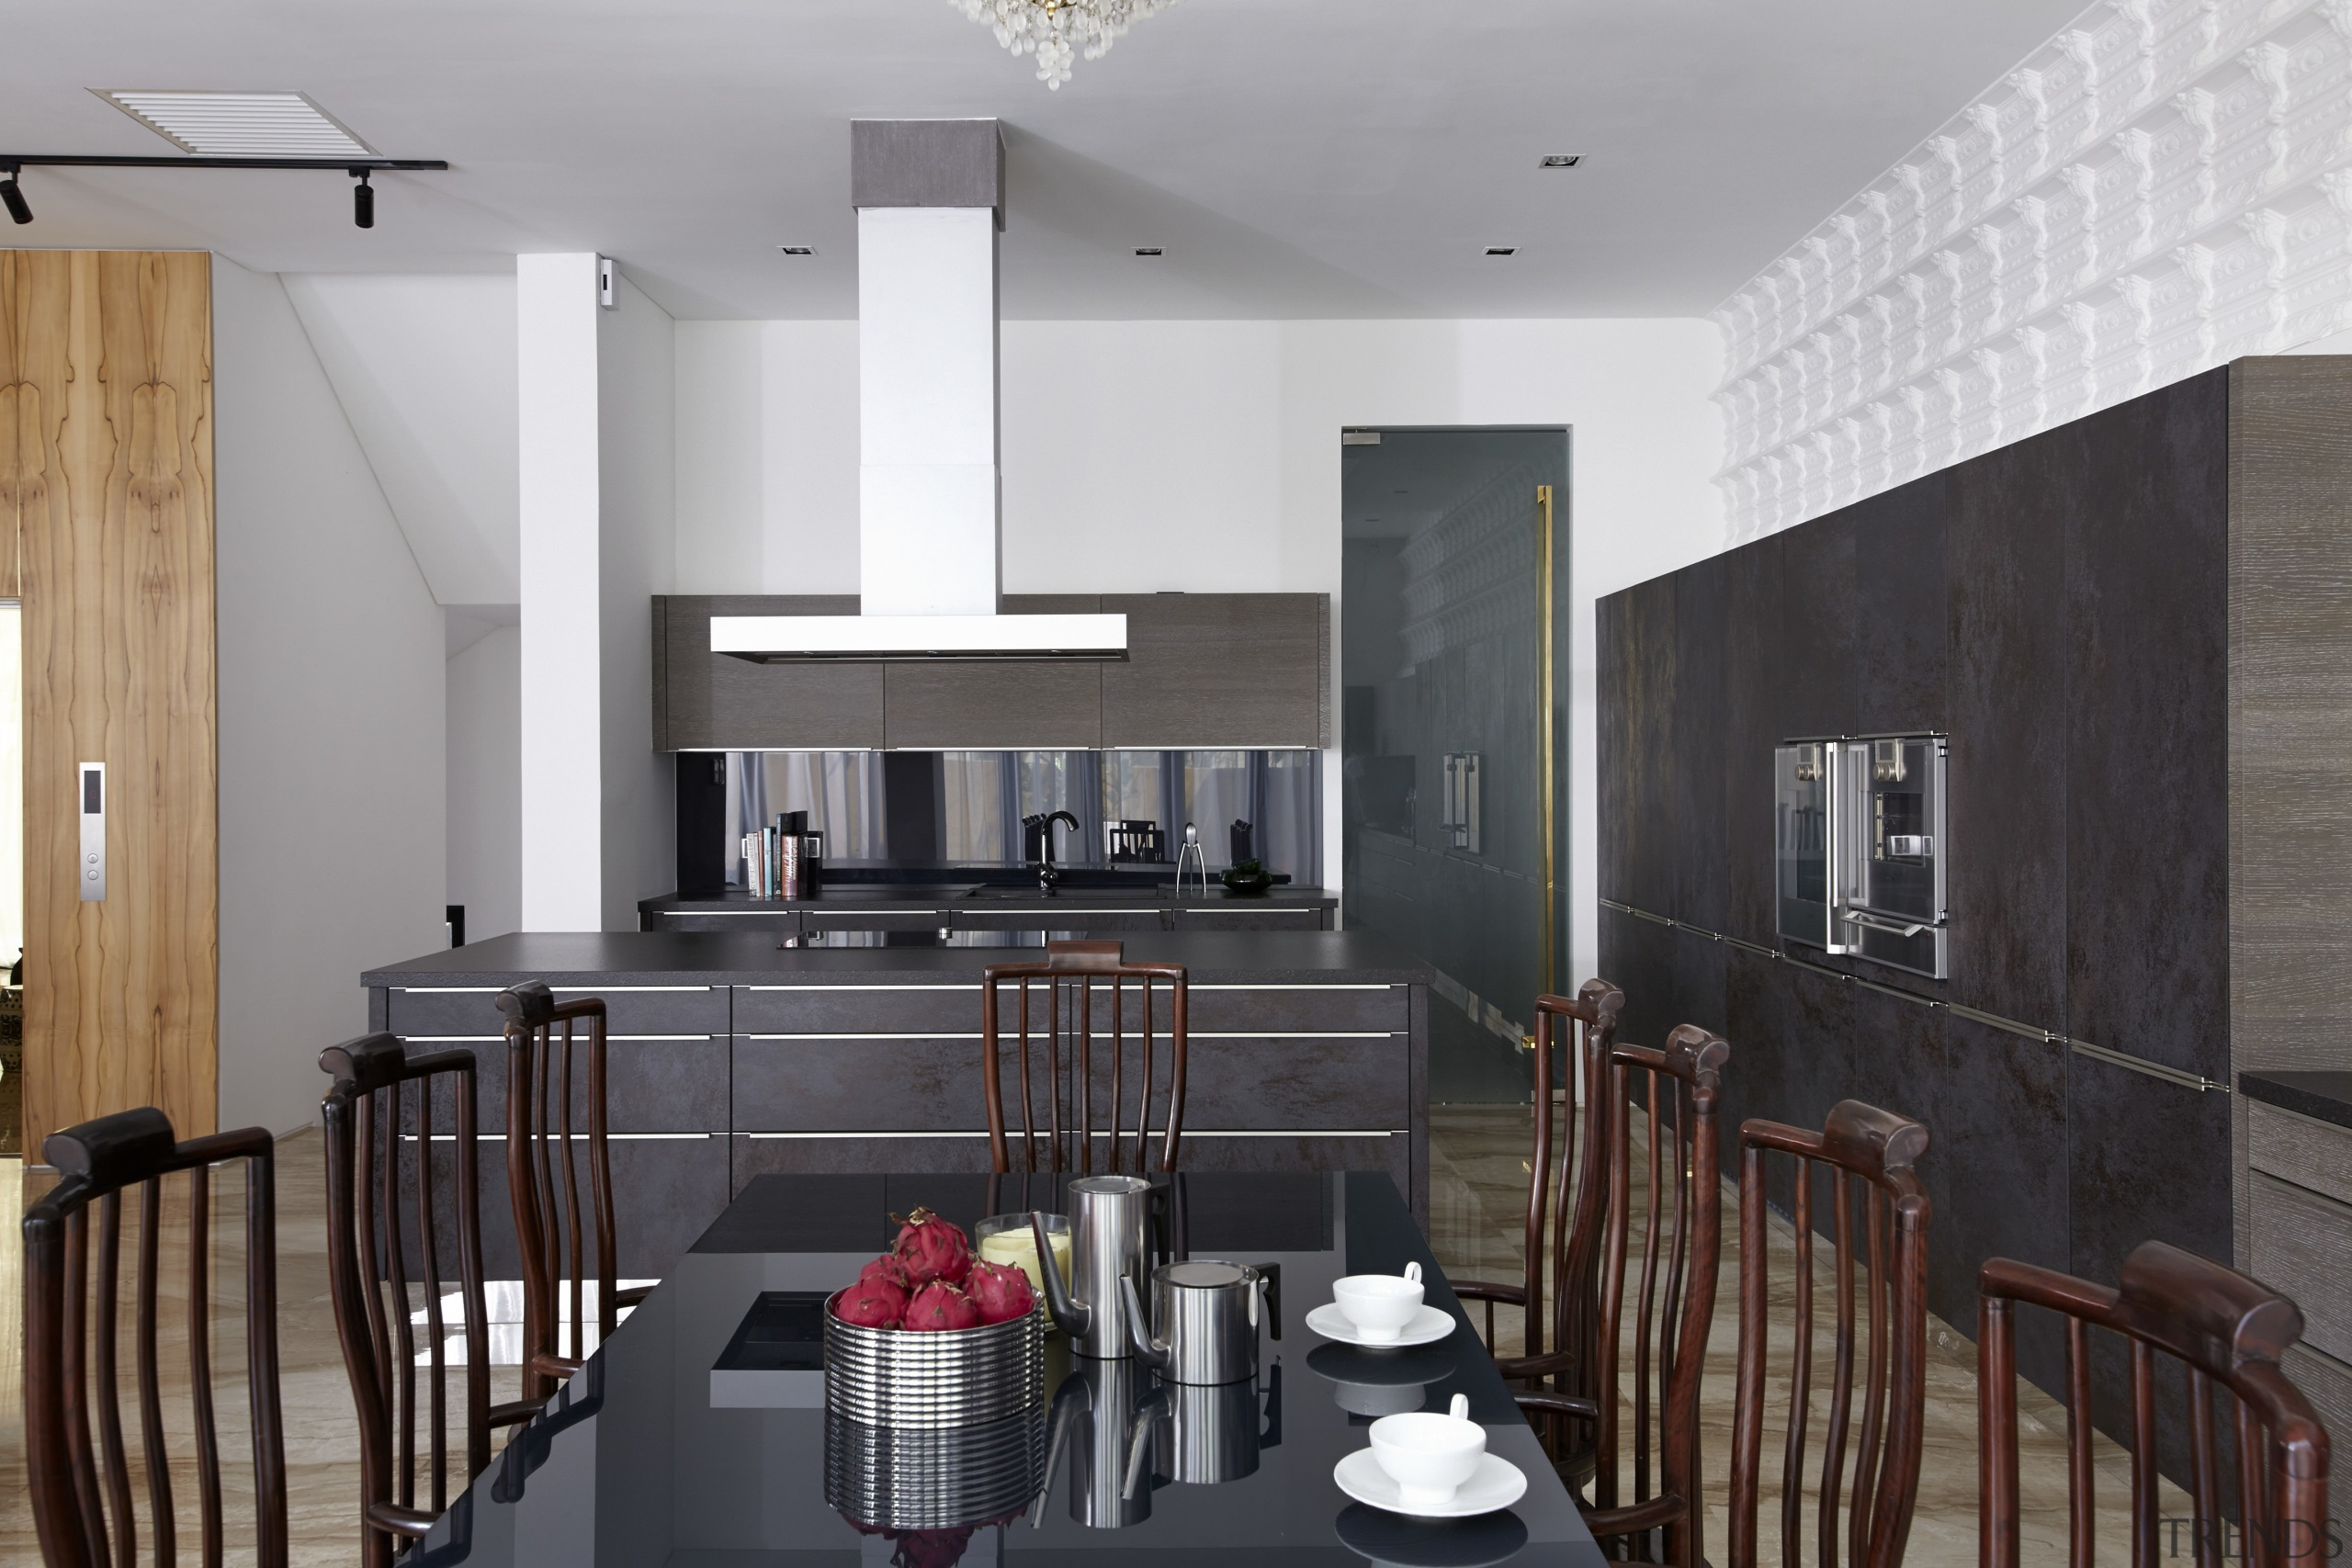 While the dry kitchen, seen here, is the architecture, interior design, kitchen, real estate, room, gray, black